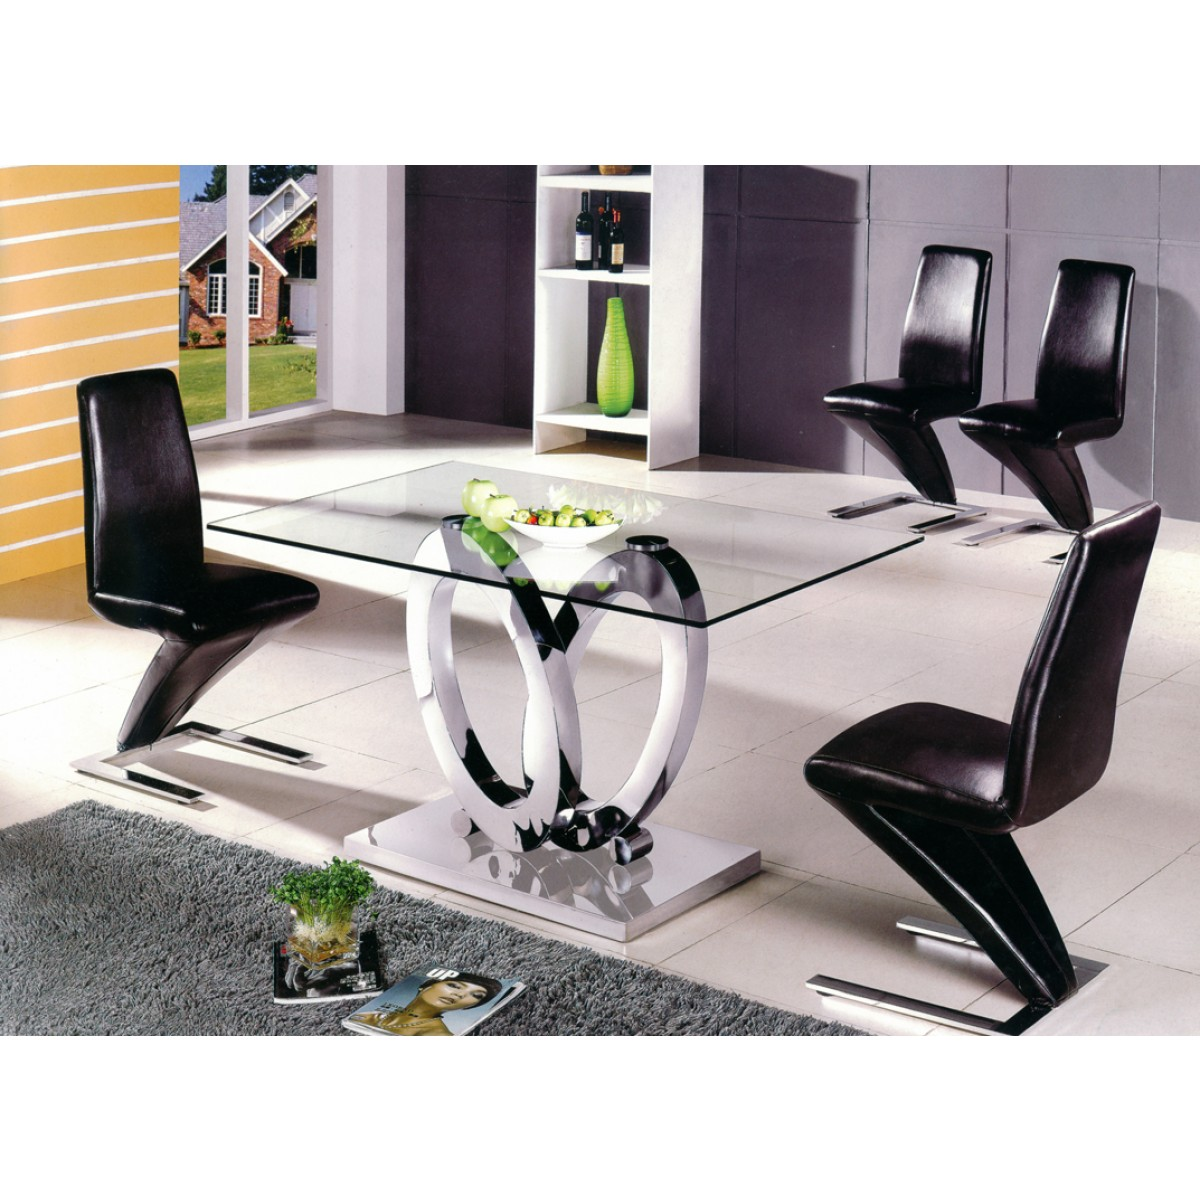 Table manger design ellipse taille au choix tables for Table a manger design